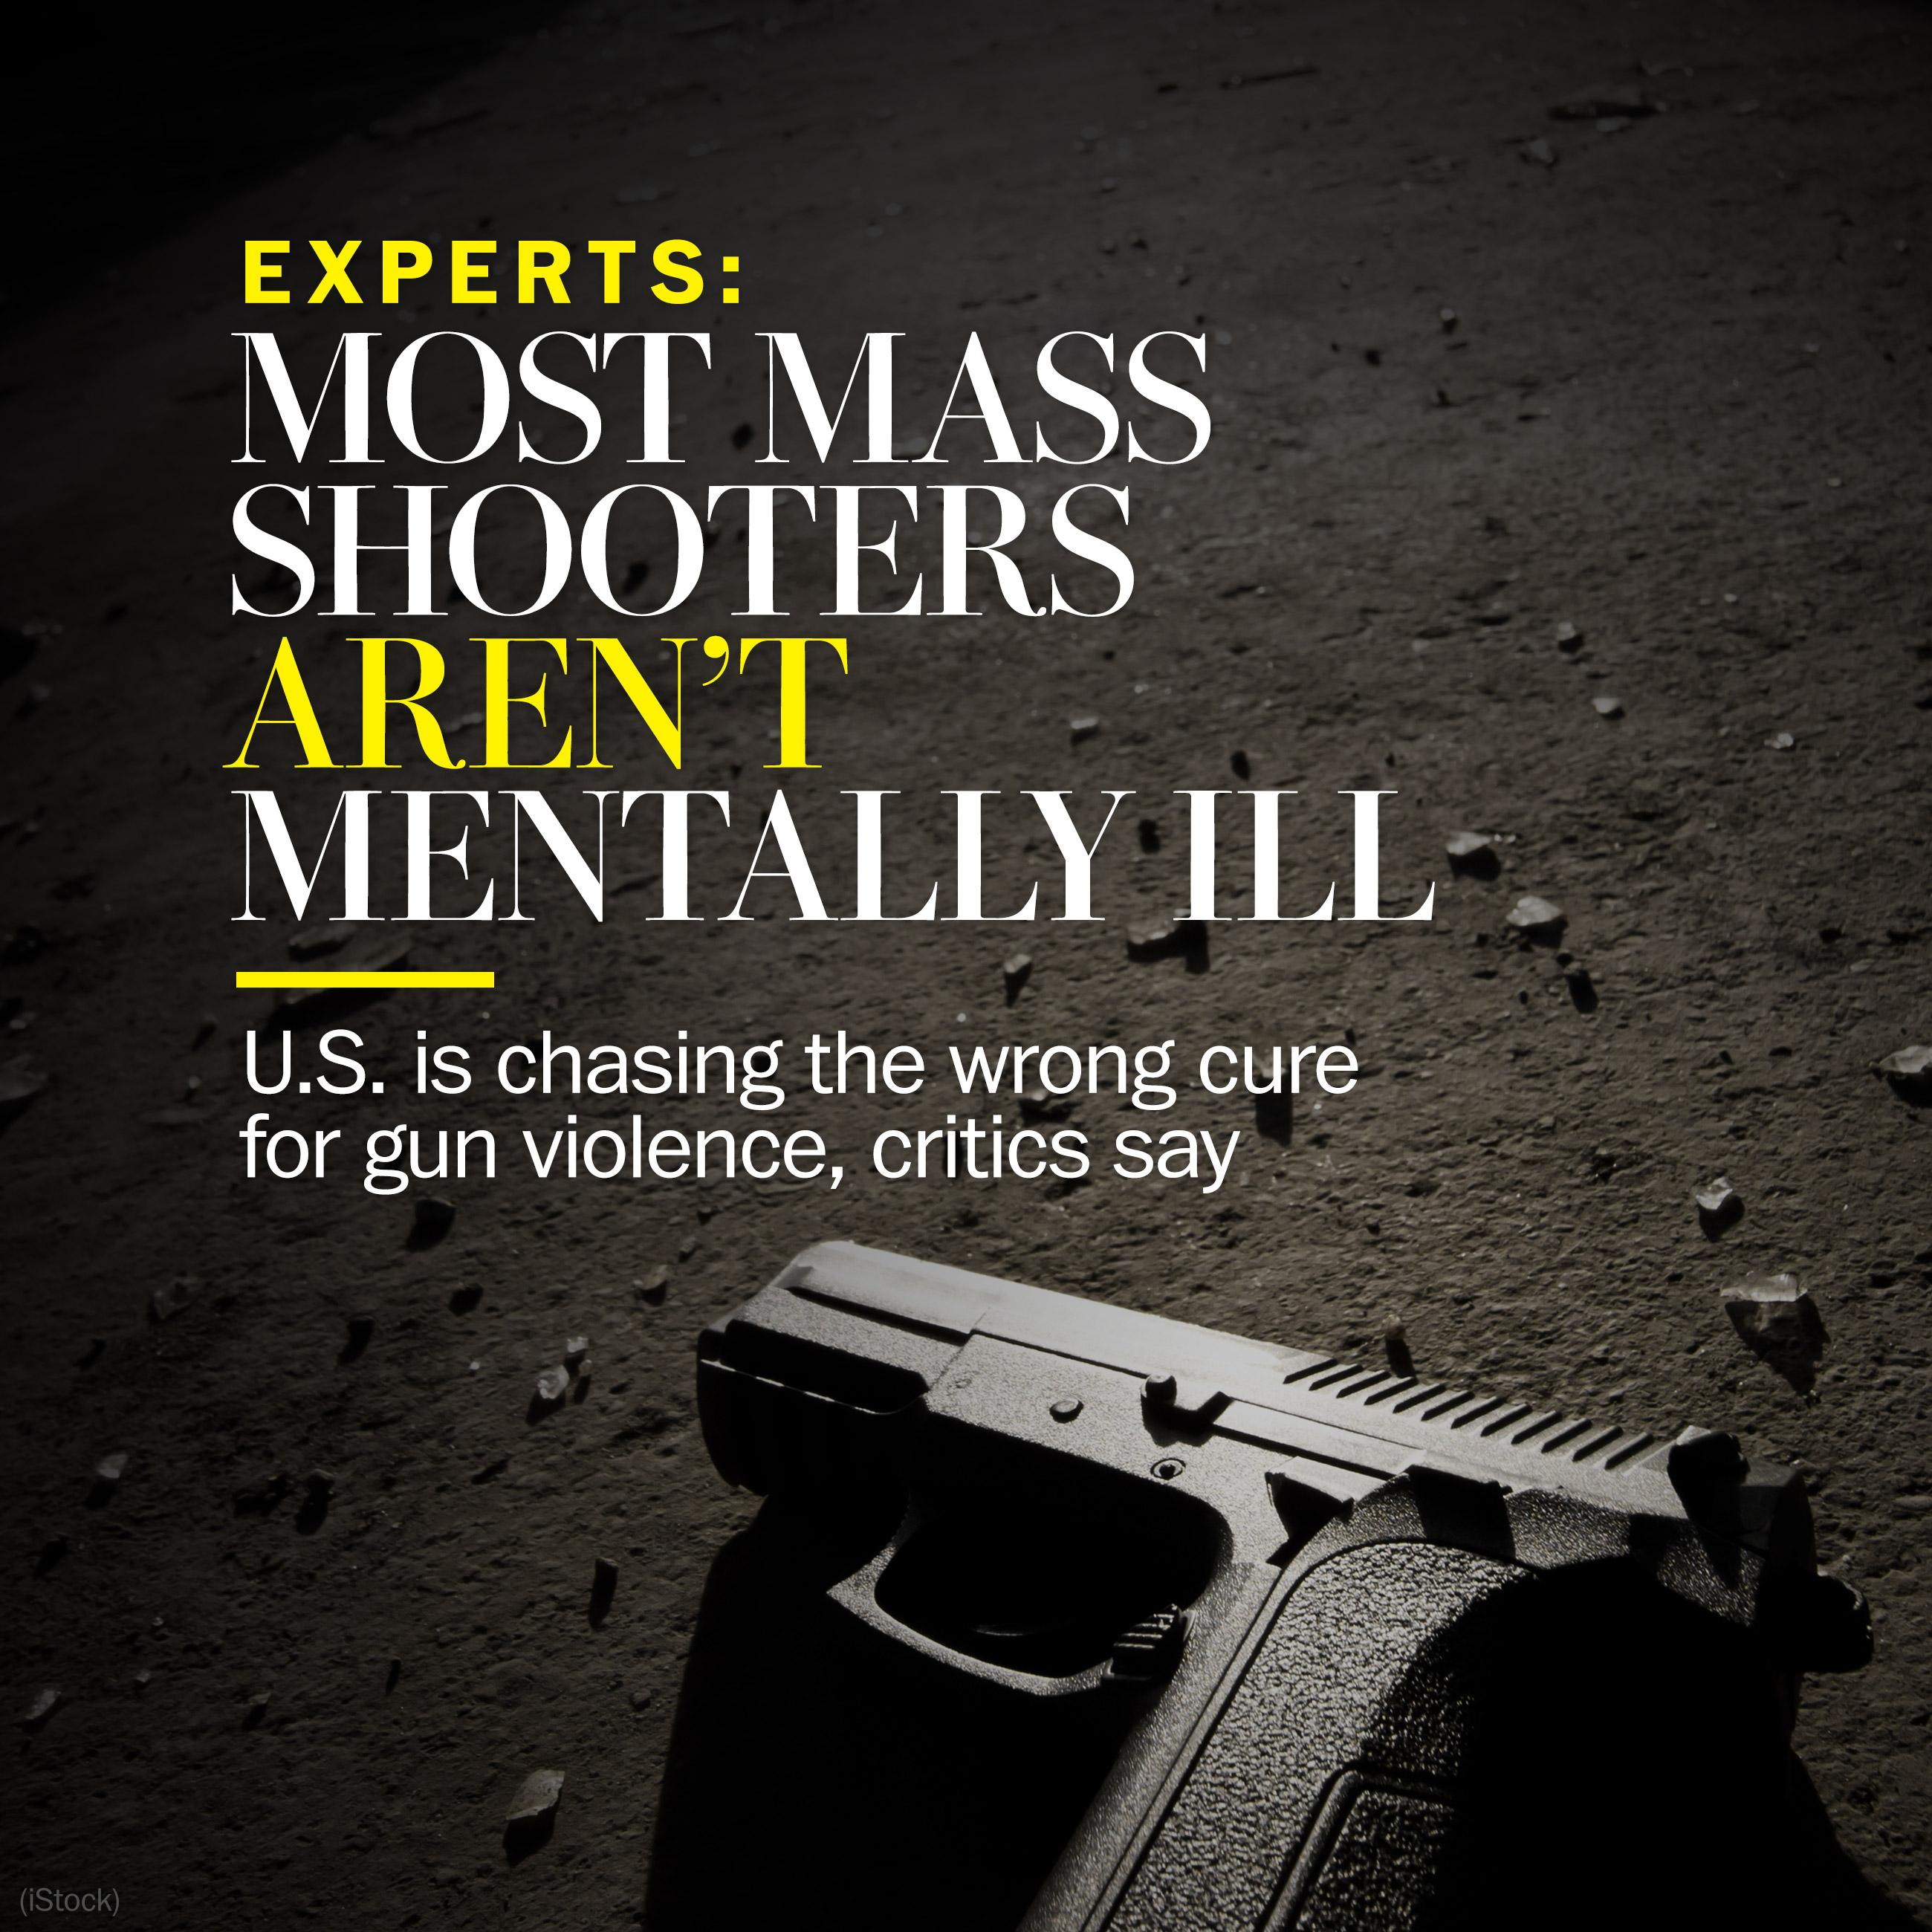 Most mass shooters aren't mentally ill. So why push better treatment as the answer?